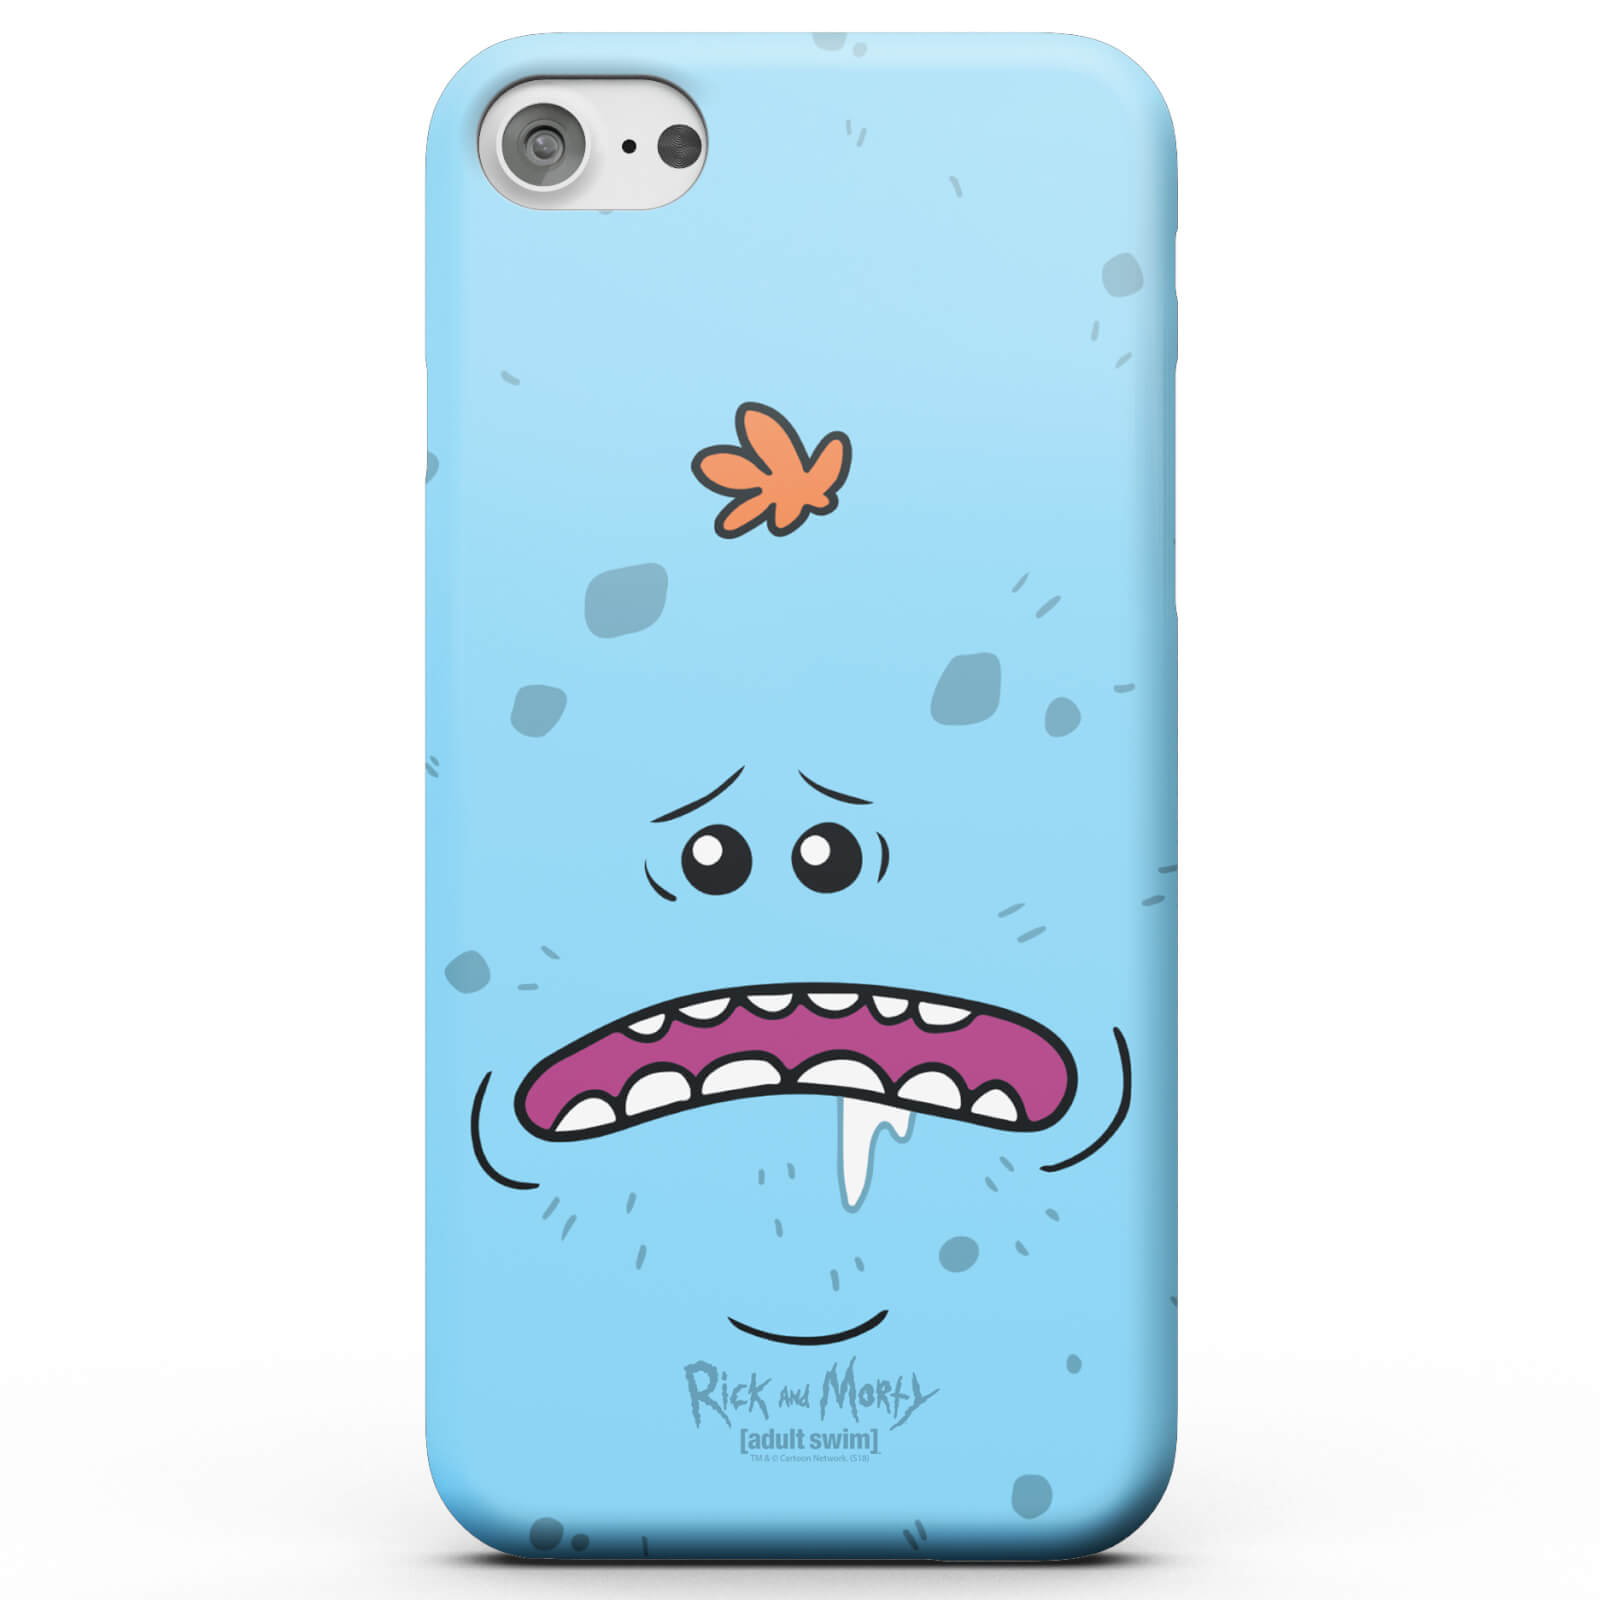 Funda Móvil Rick y Morty Mr Meeseeks para iPhone y Android - iPhone 7 Plus - Carcasa rígida - Mate de Rick and Morty